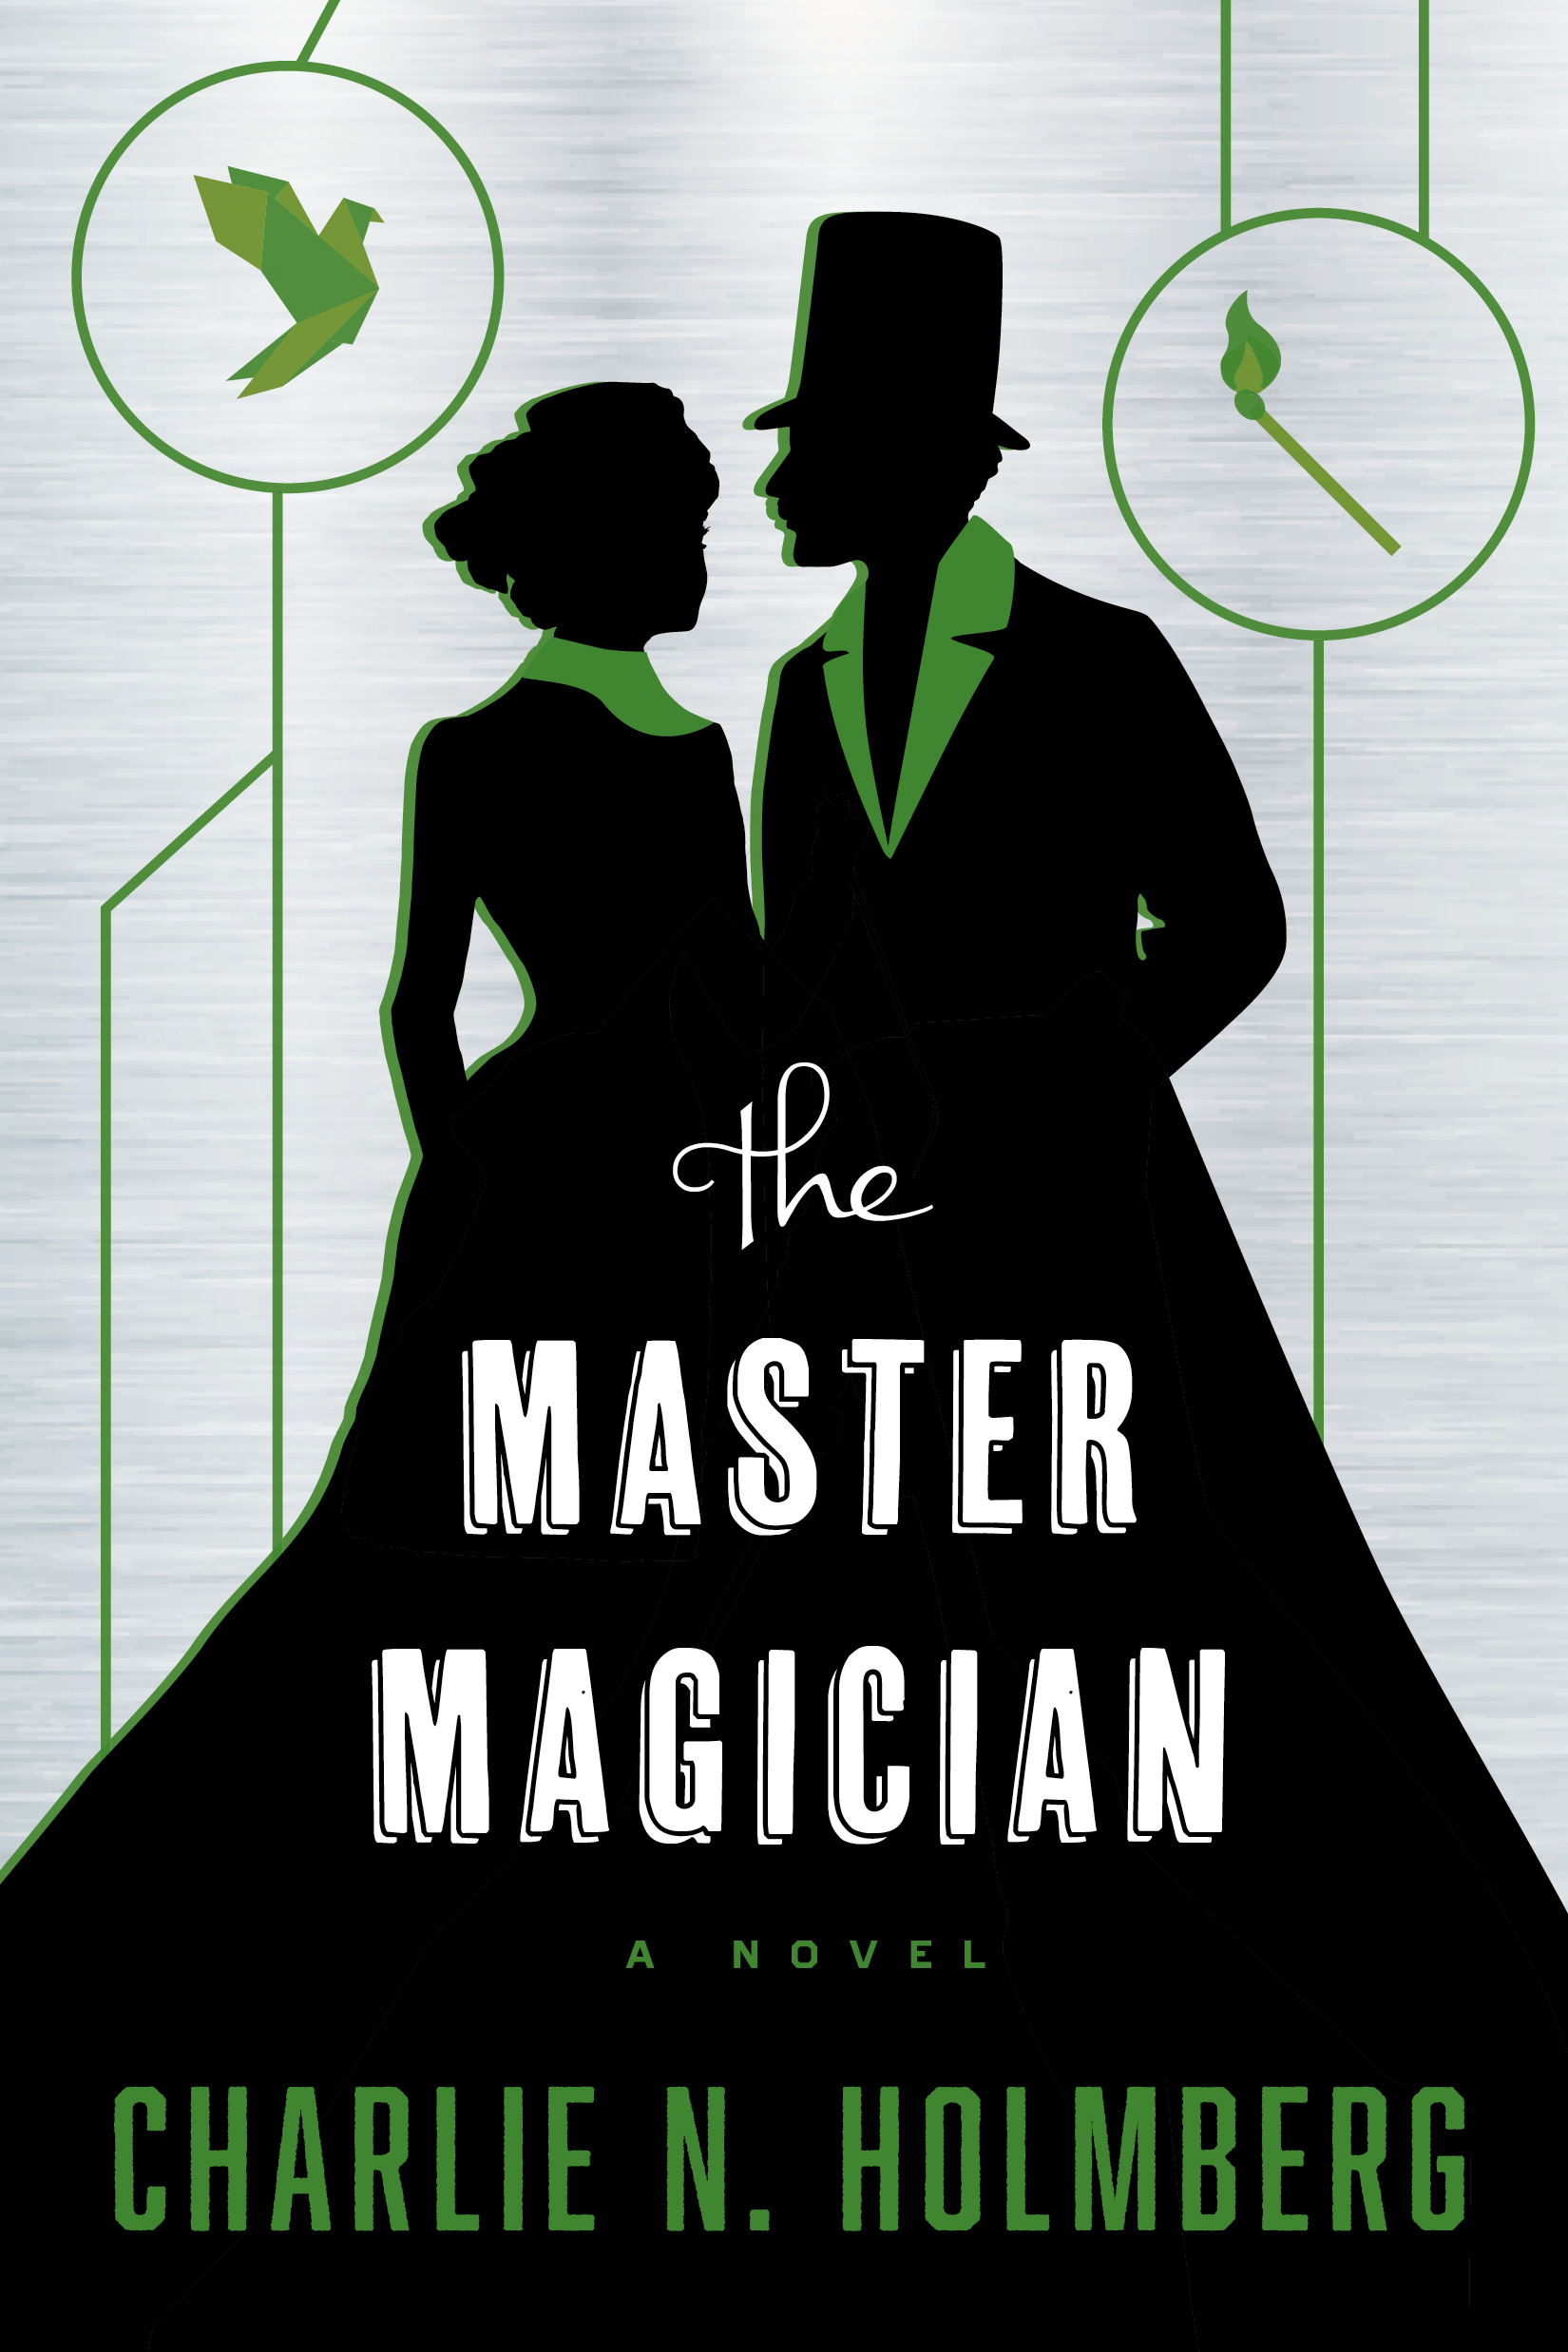 """The Master Magician"" by Charlie N. Holmberg."